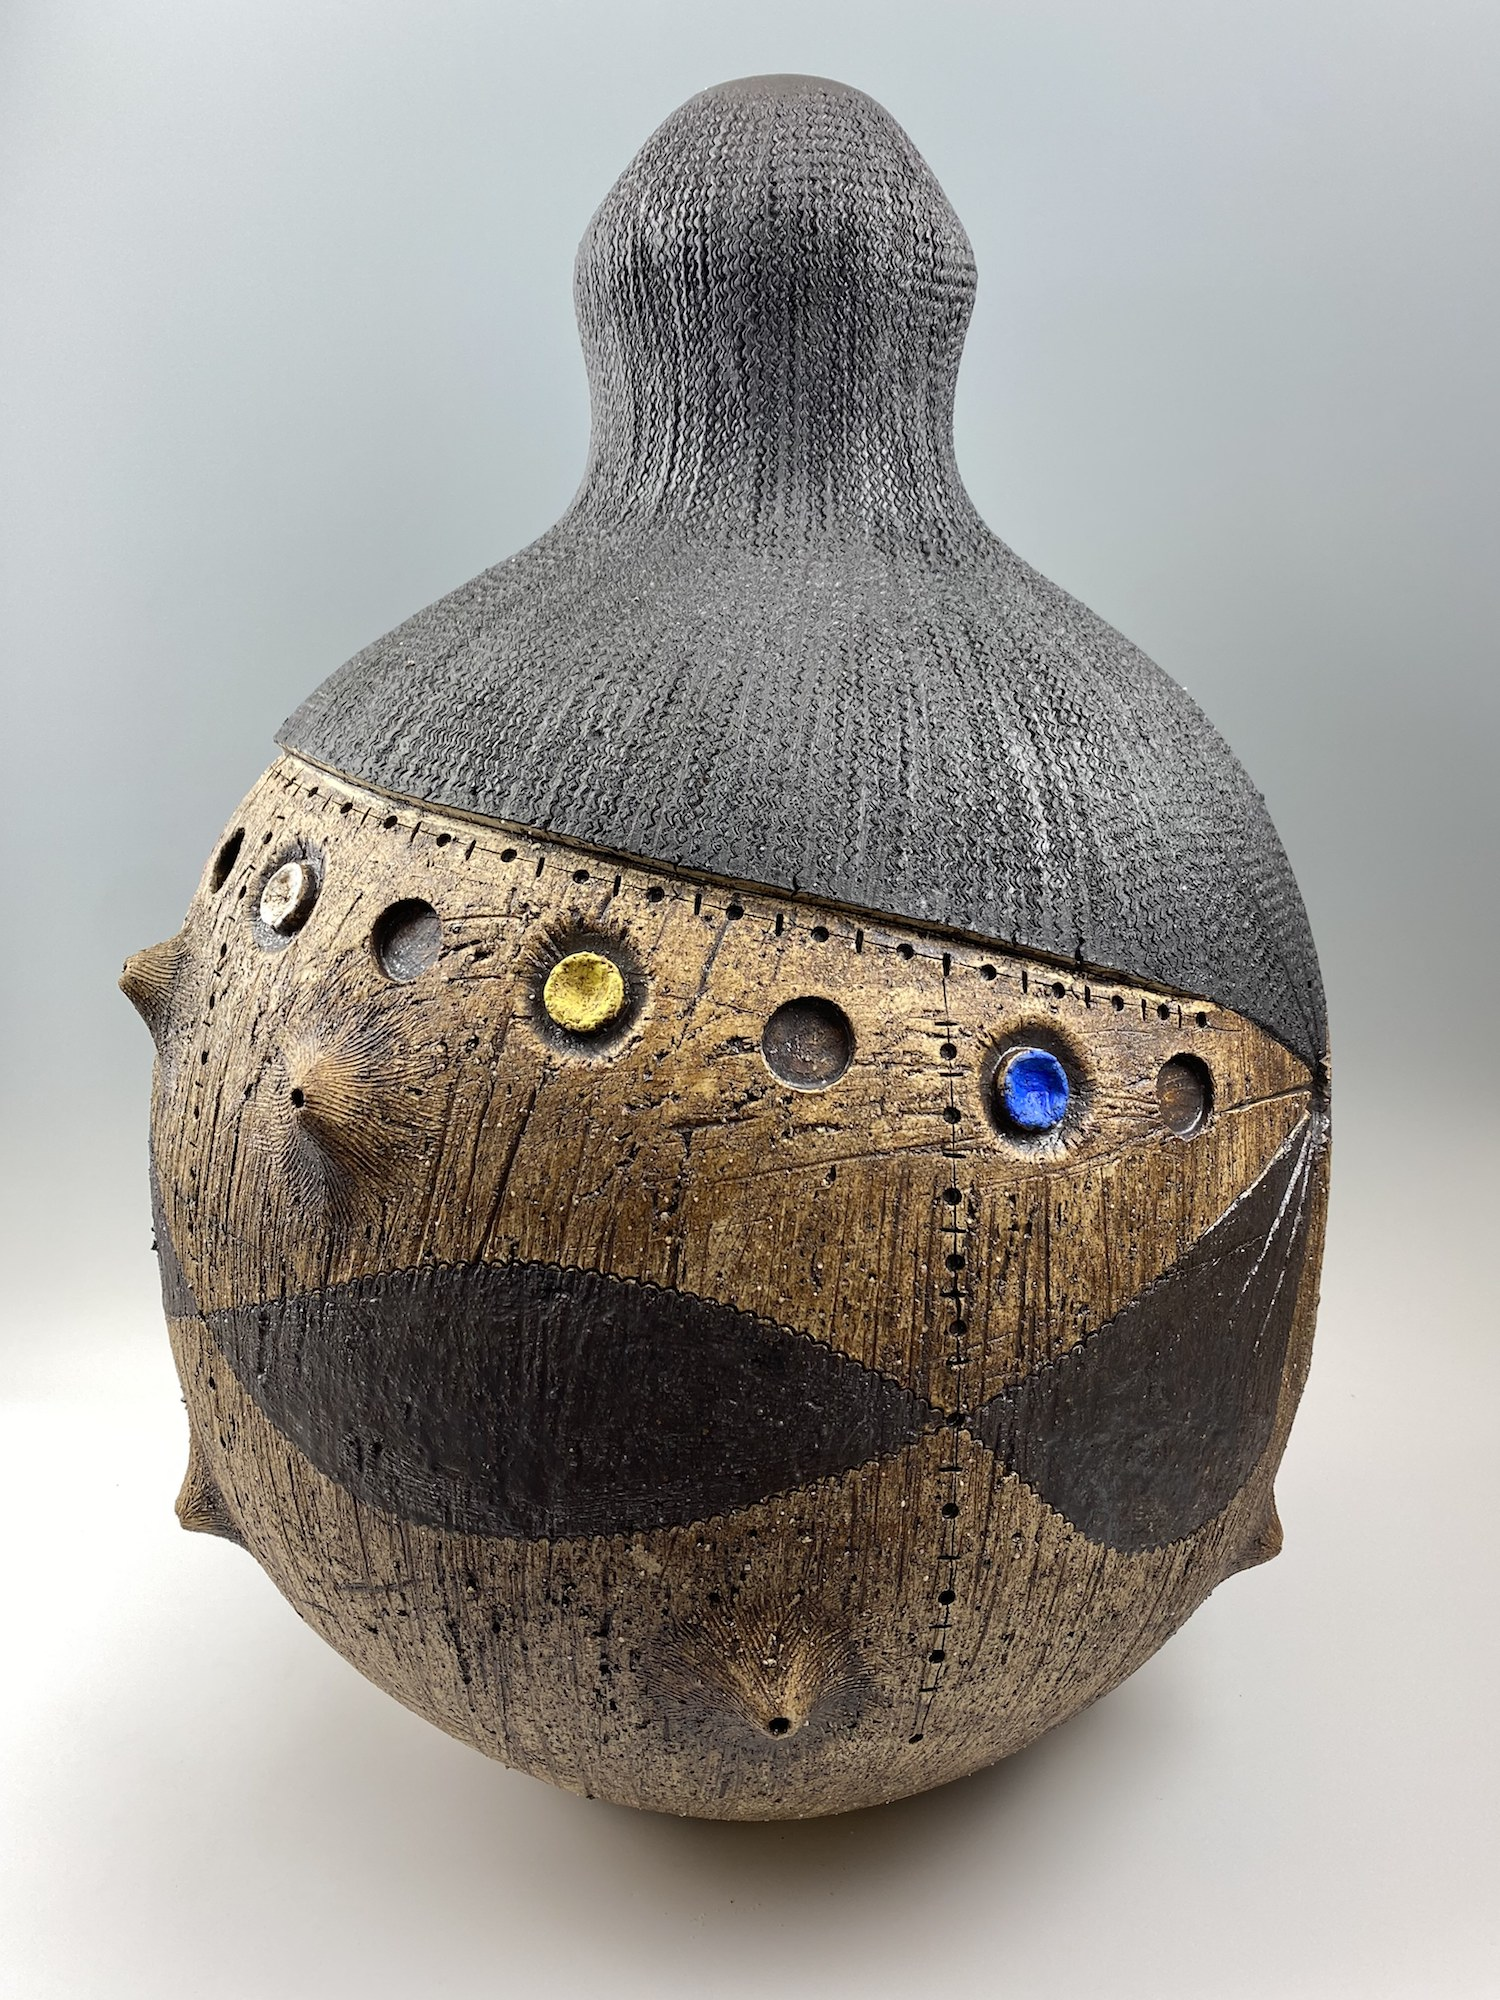 Pottery sculpture with African influences. Features colorful gems